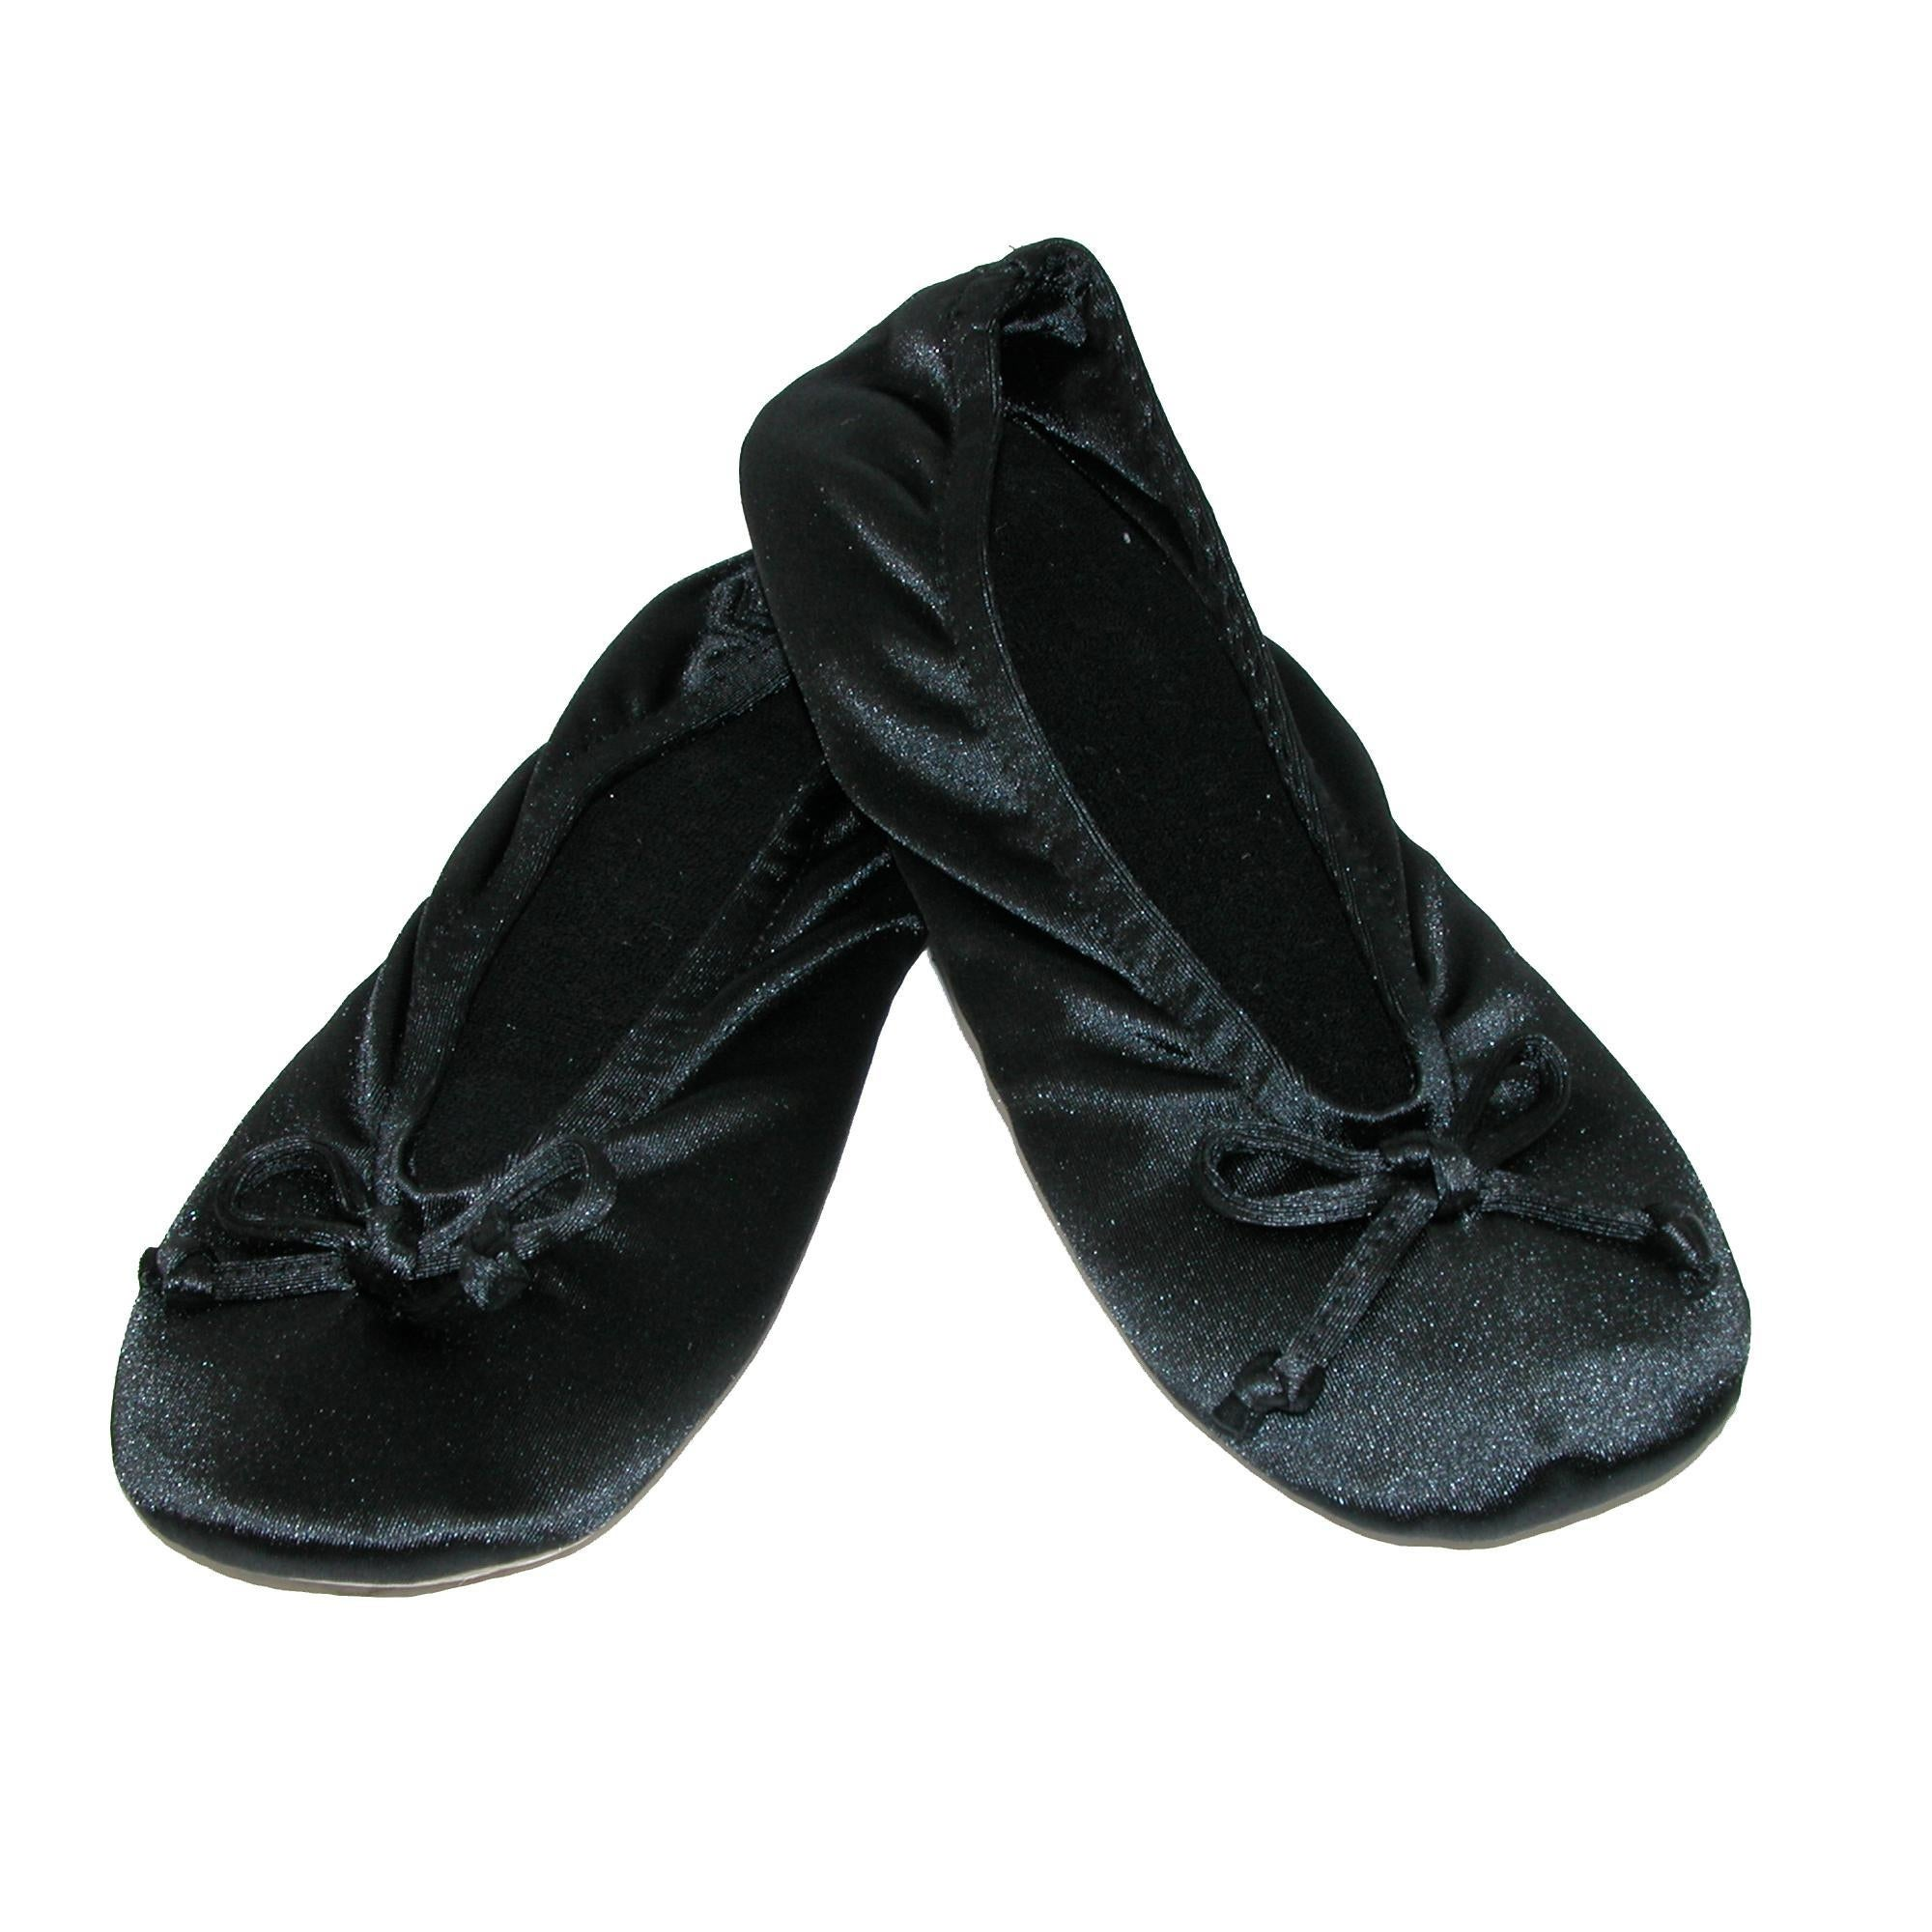 eee6754d491 Shop Isotoner Women s Satin Classic Ballerina Slippers - Free Shipping On  Orders Over  45 - Overstock - 14400060